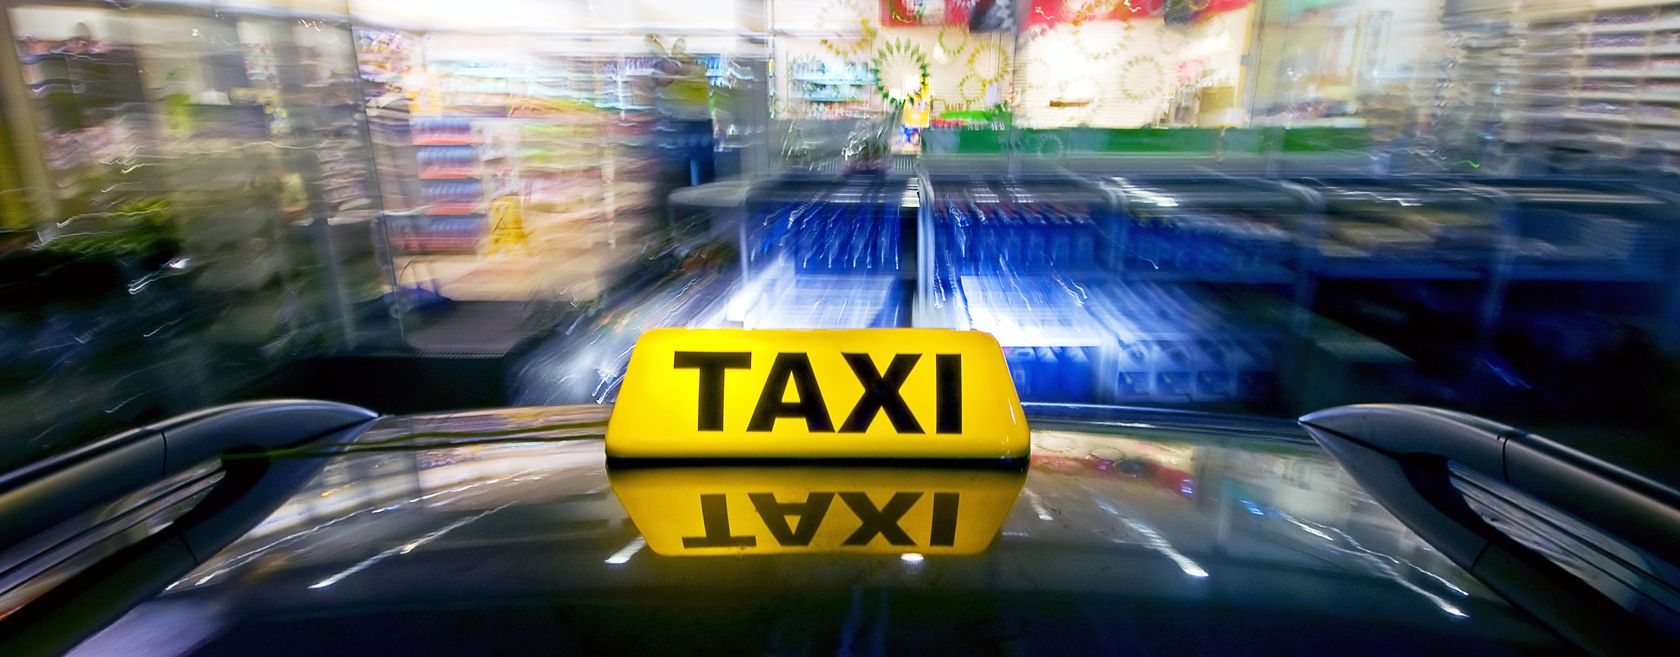 Taxi Service Near Me, Taxi Number in Farnham AB Taxis